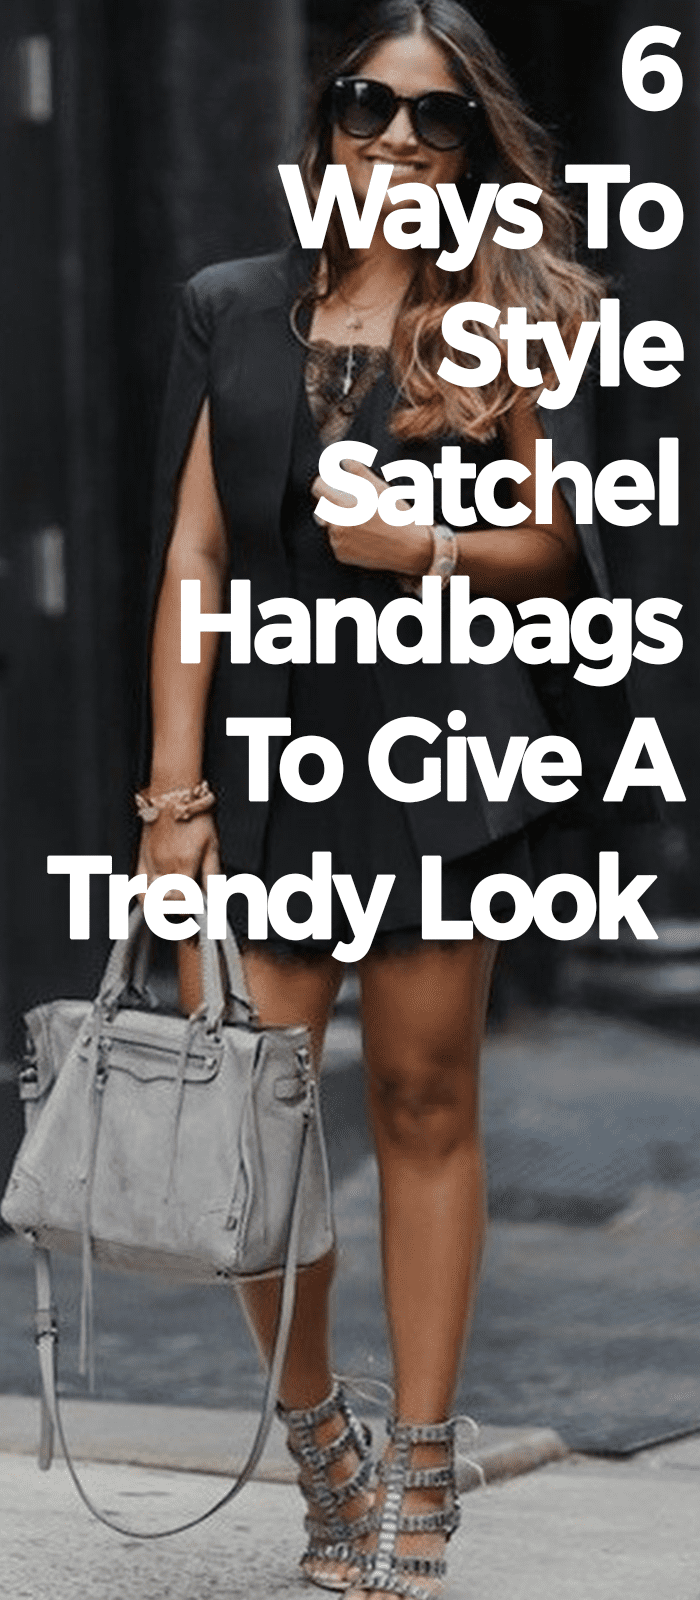 6 Ways To Style Satchel Handbags To Give Trendy Look